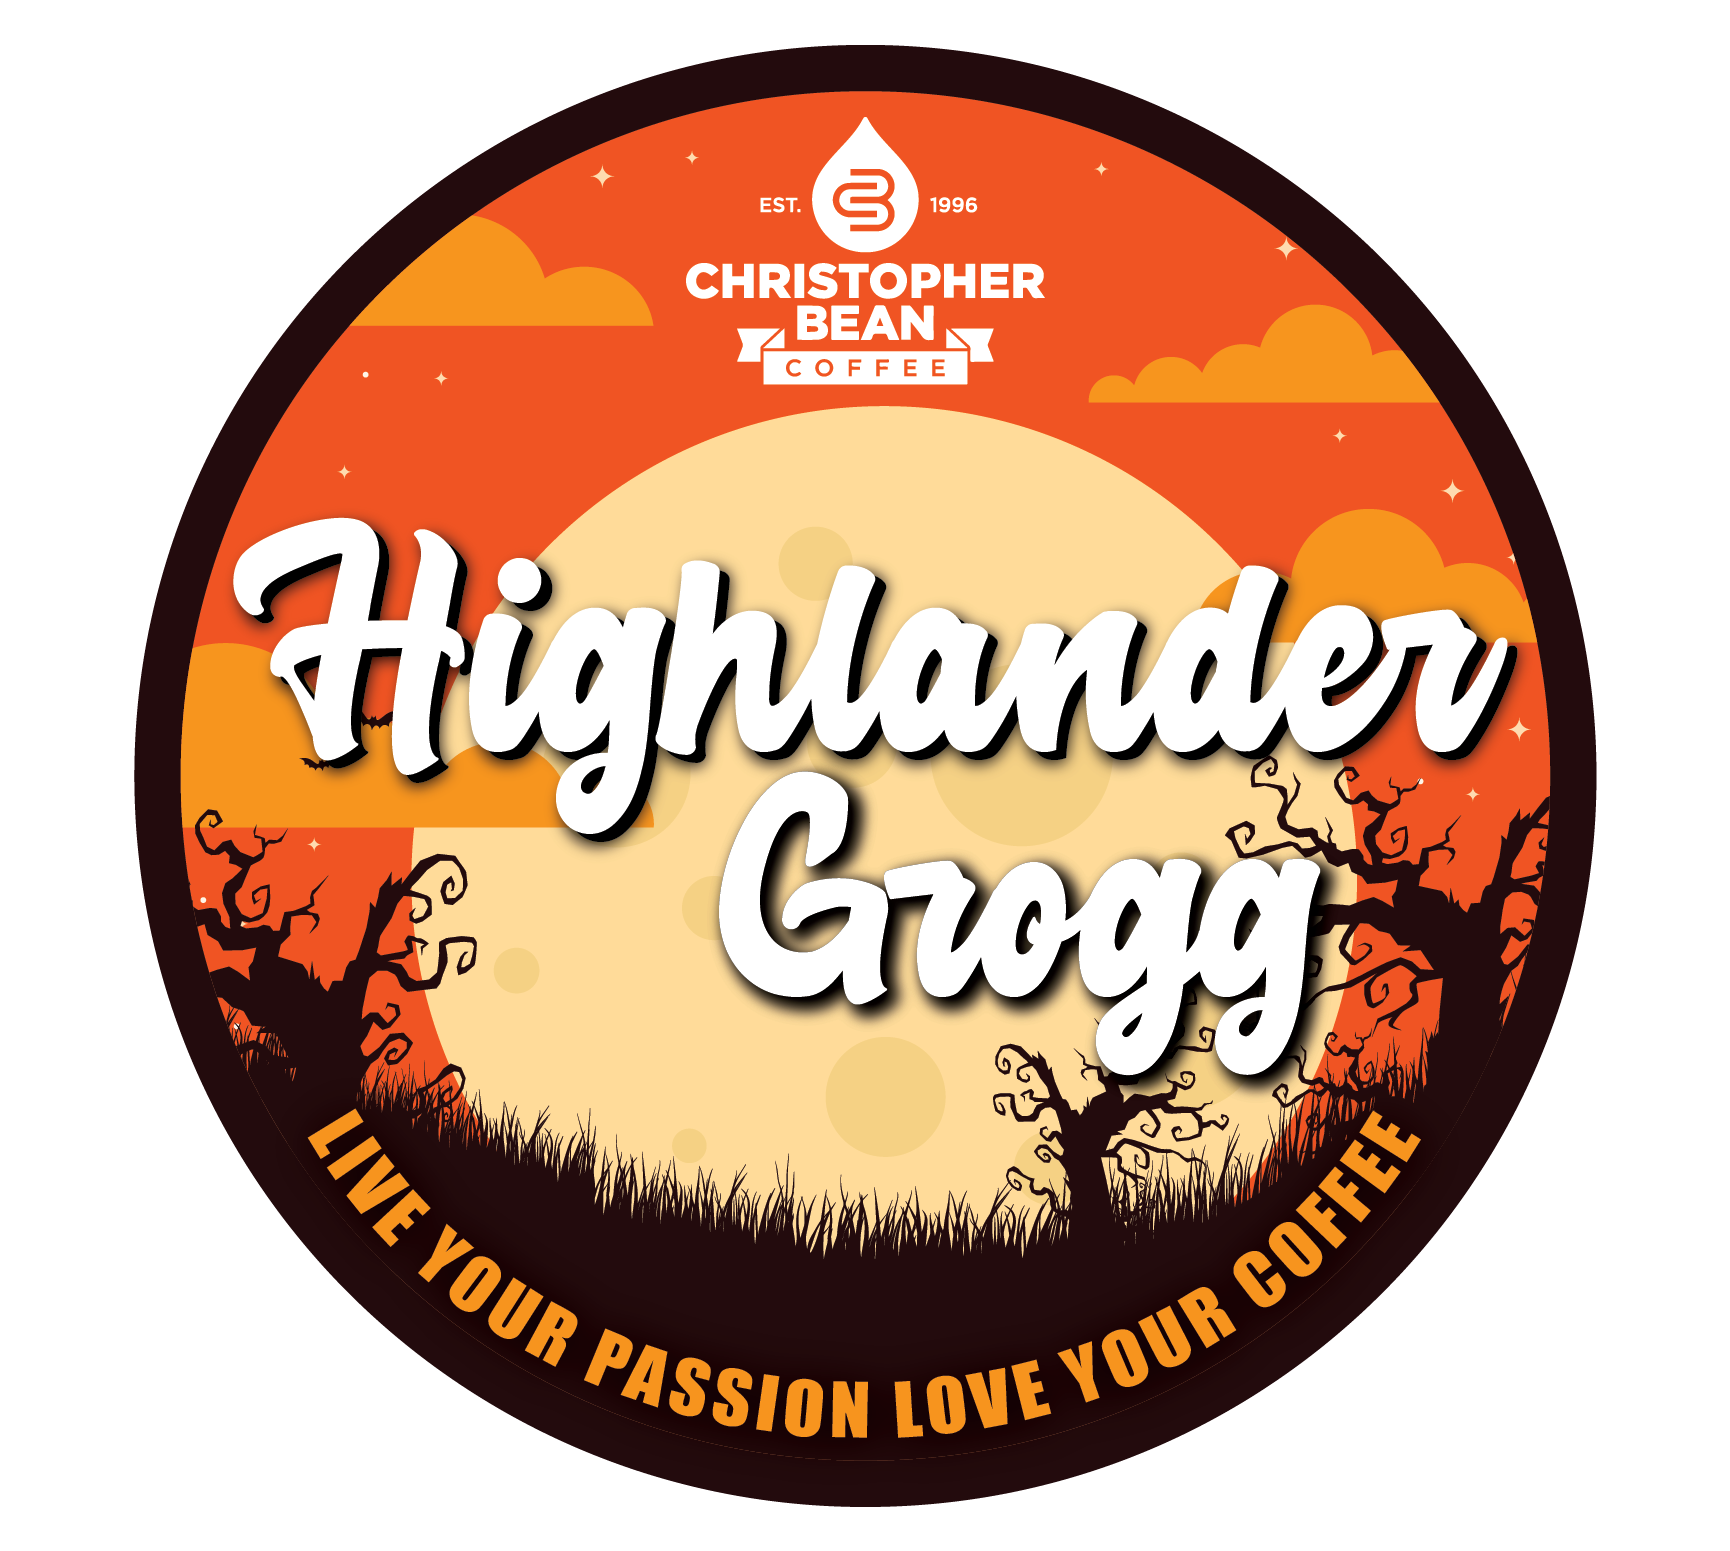 Highlander Grogg Single Cup Coffee